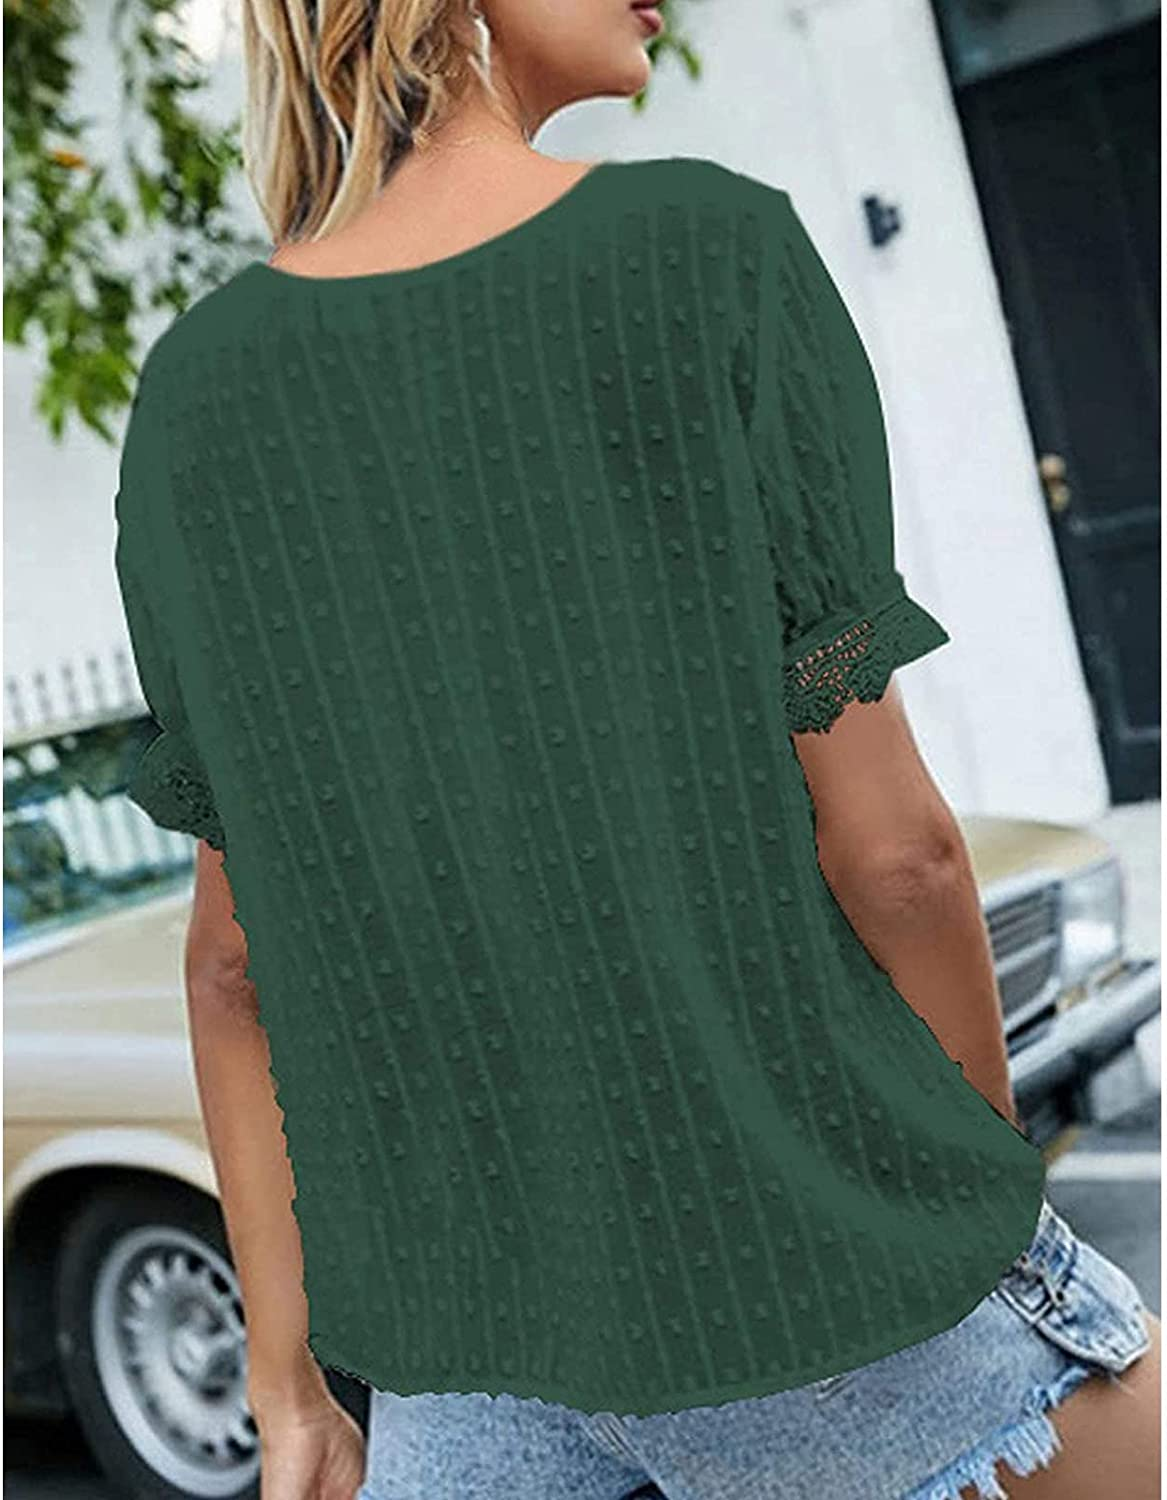 Fashion V Neck Short Sleeve Tops for Women Solid Color Lace Casual Chiffon Trendy T-Shirts Work Daily Soft Touch Blouse